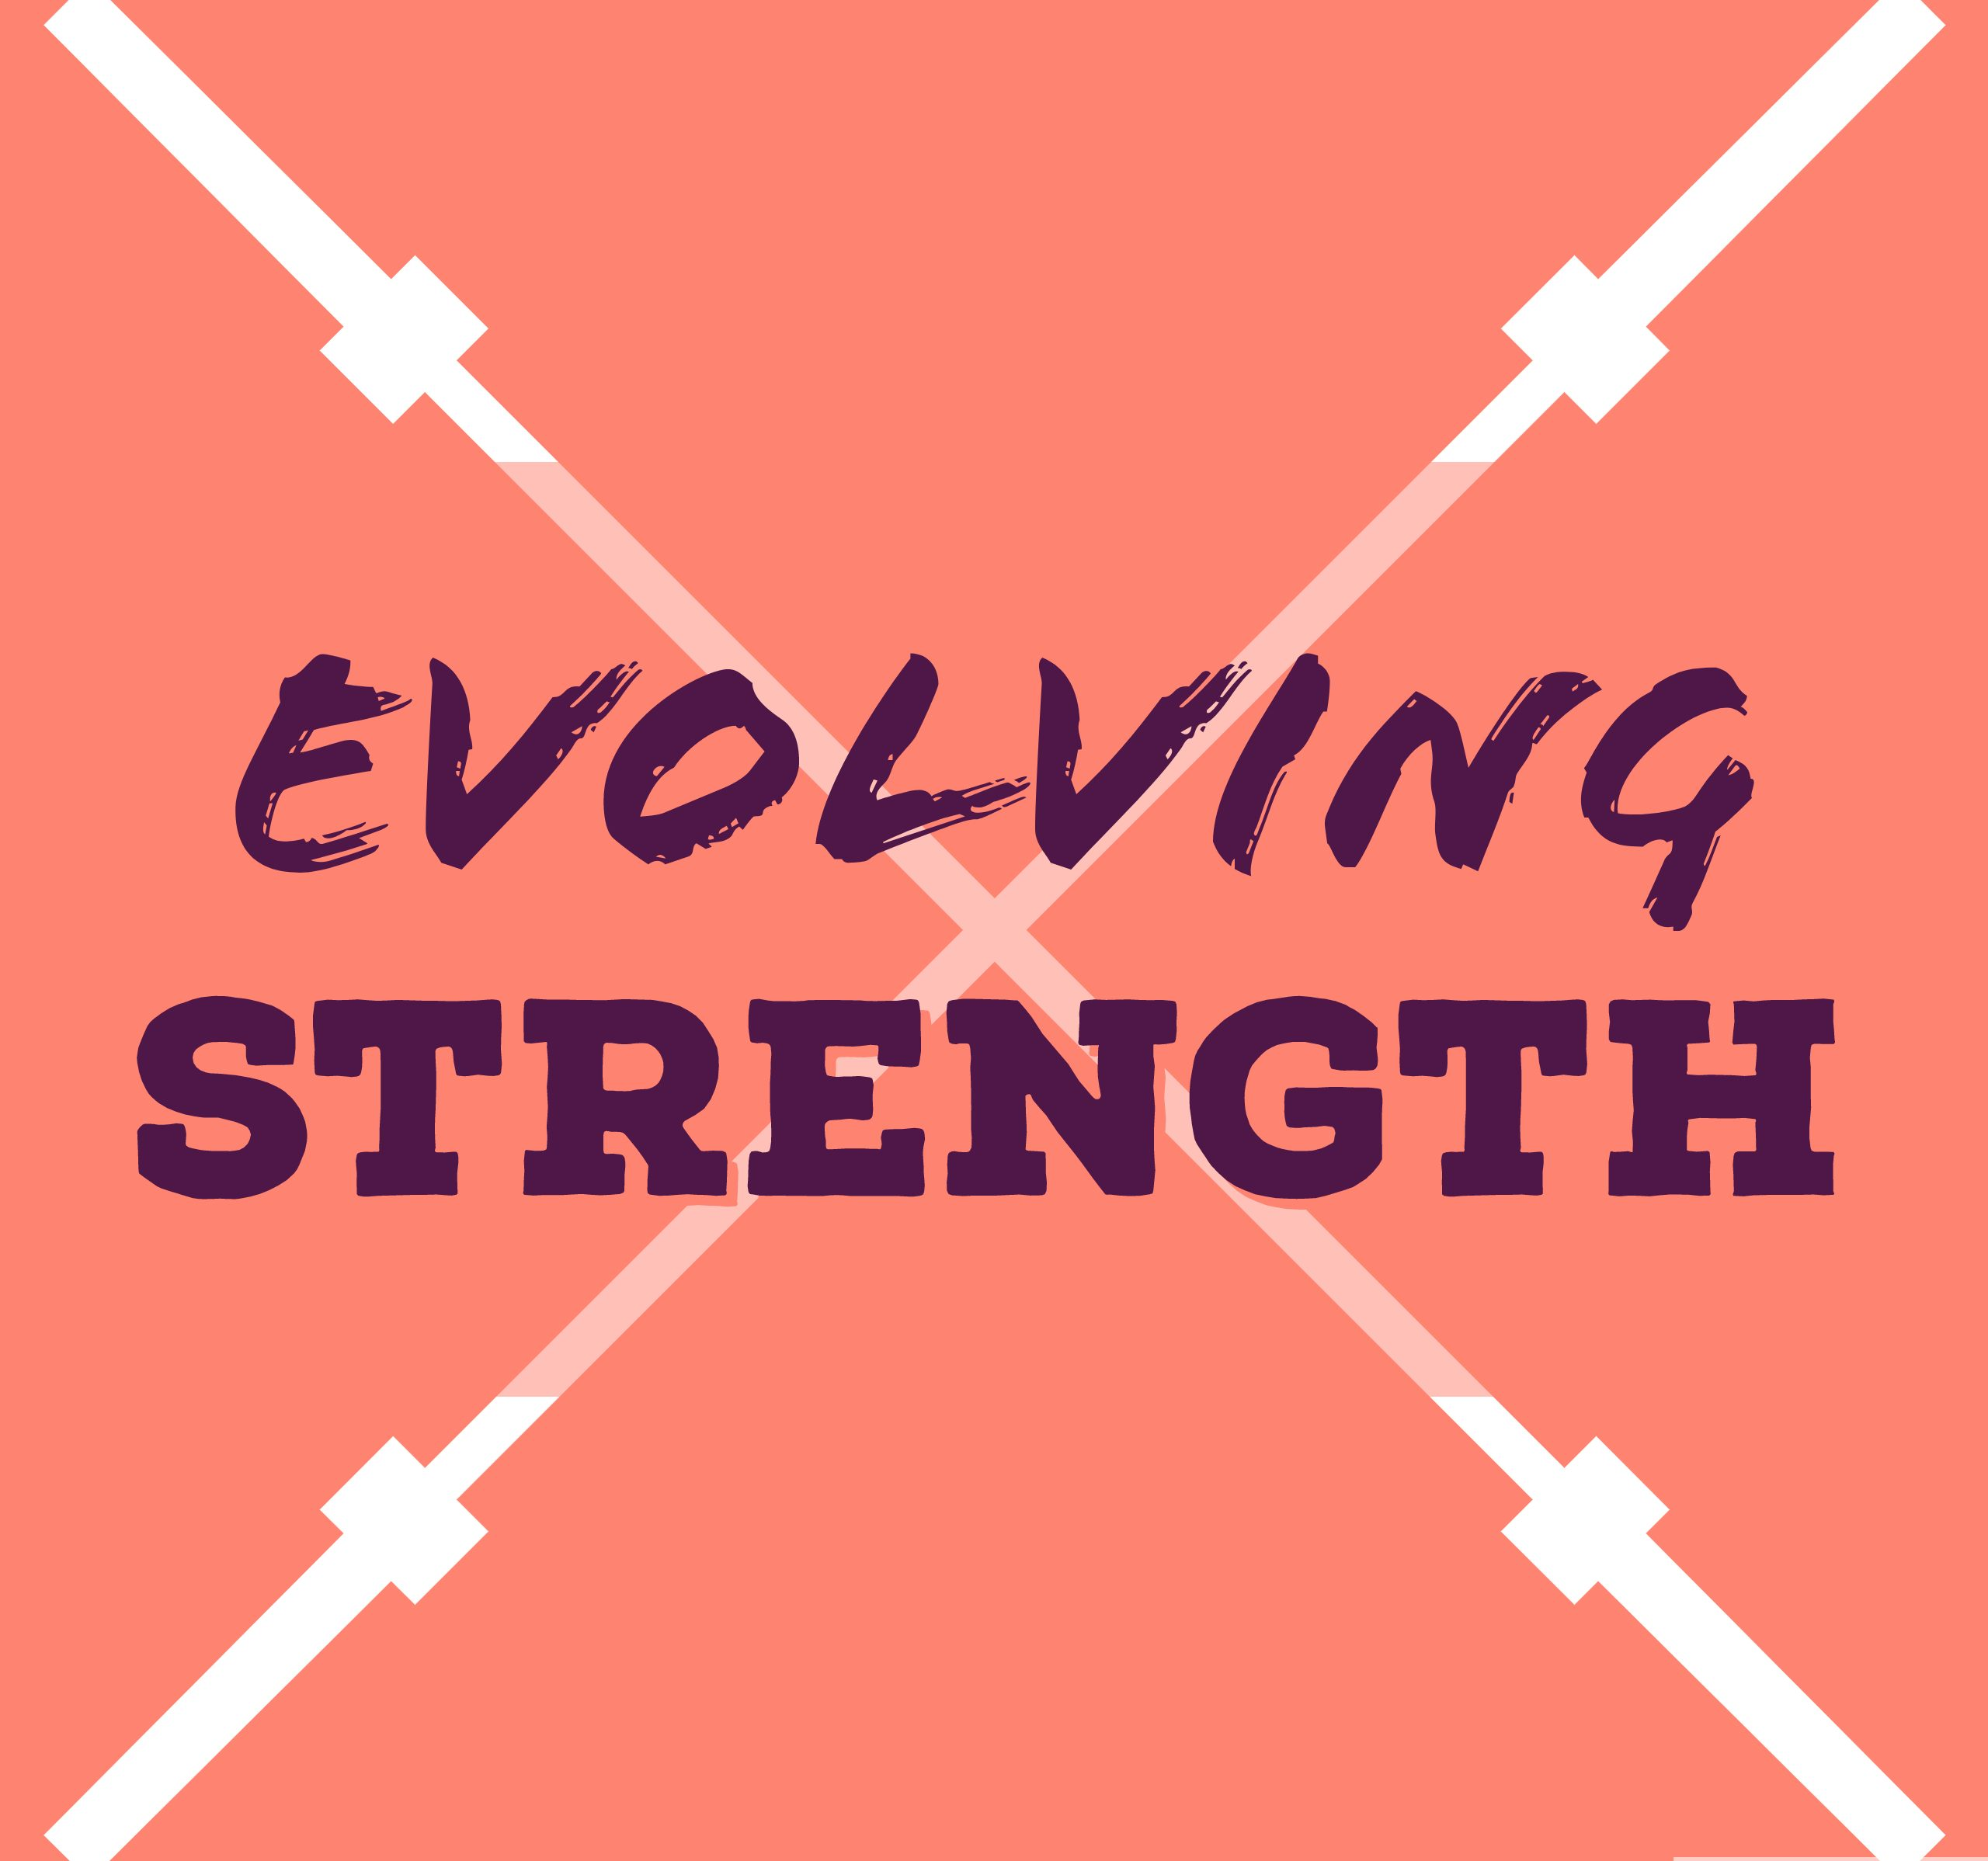 Evolving Strength